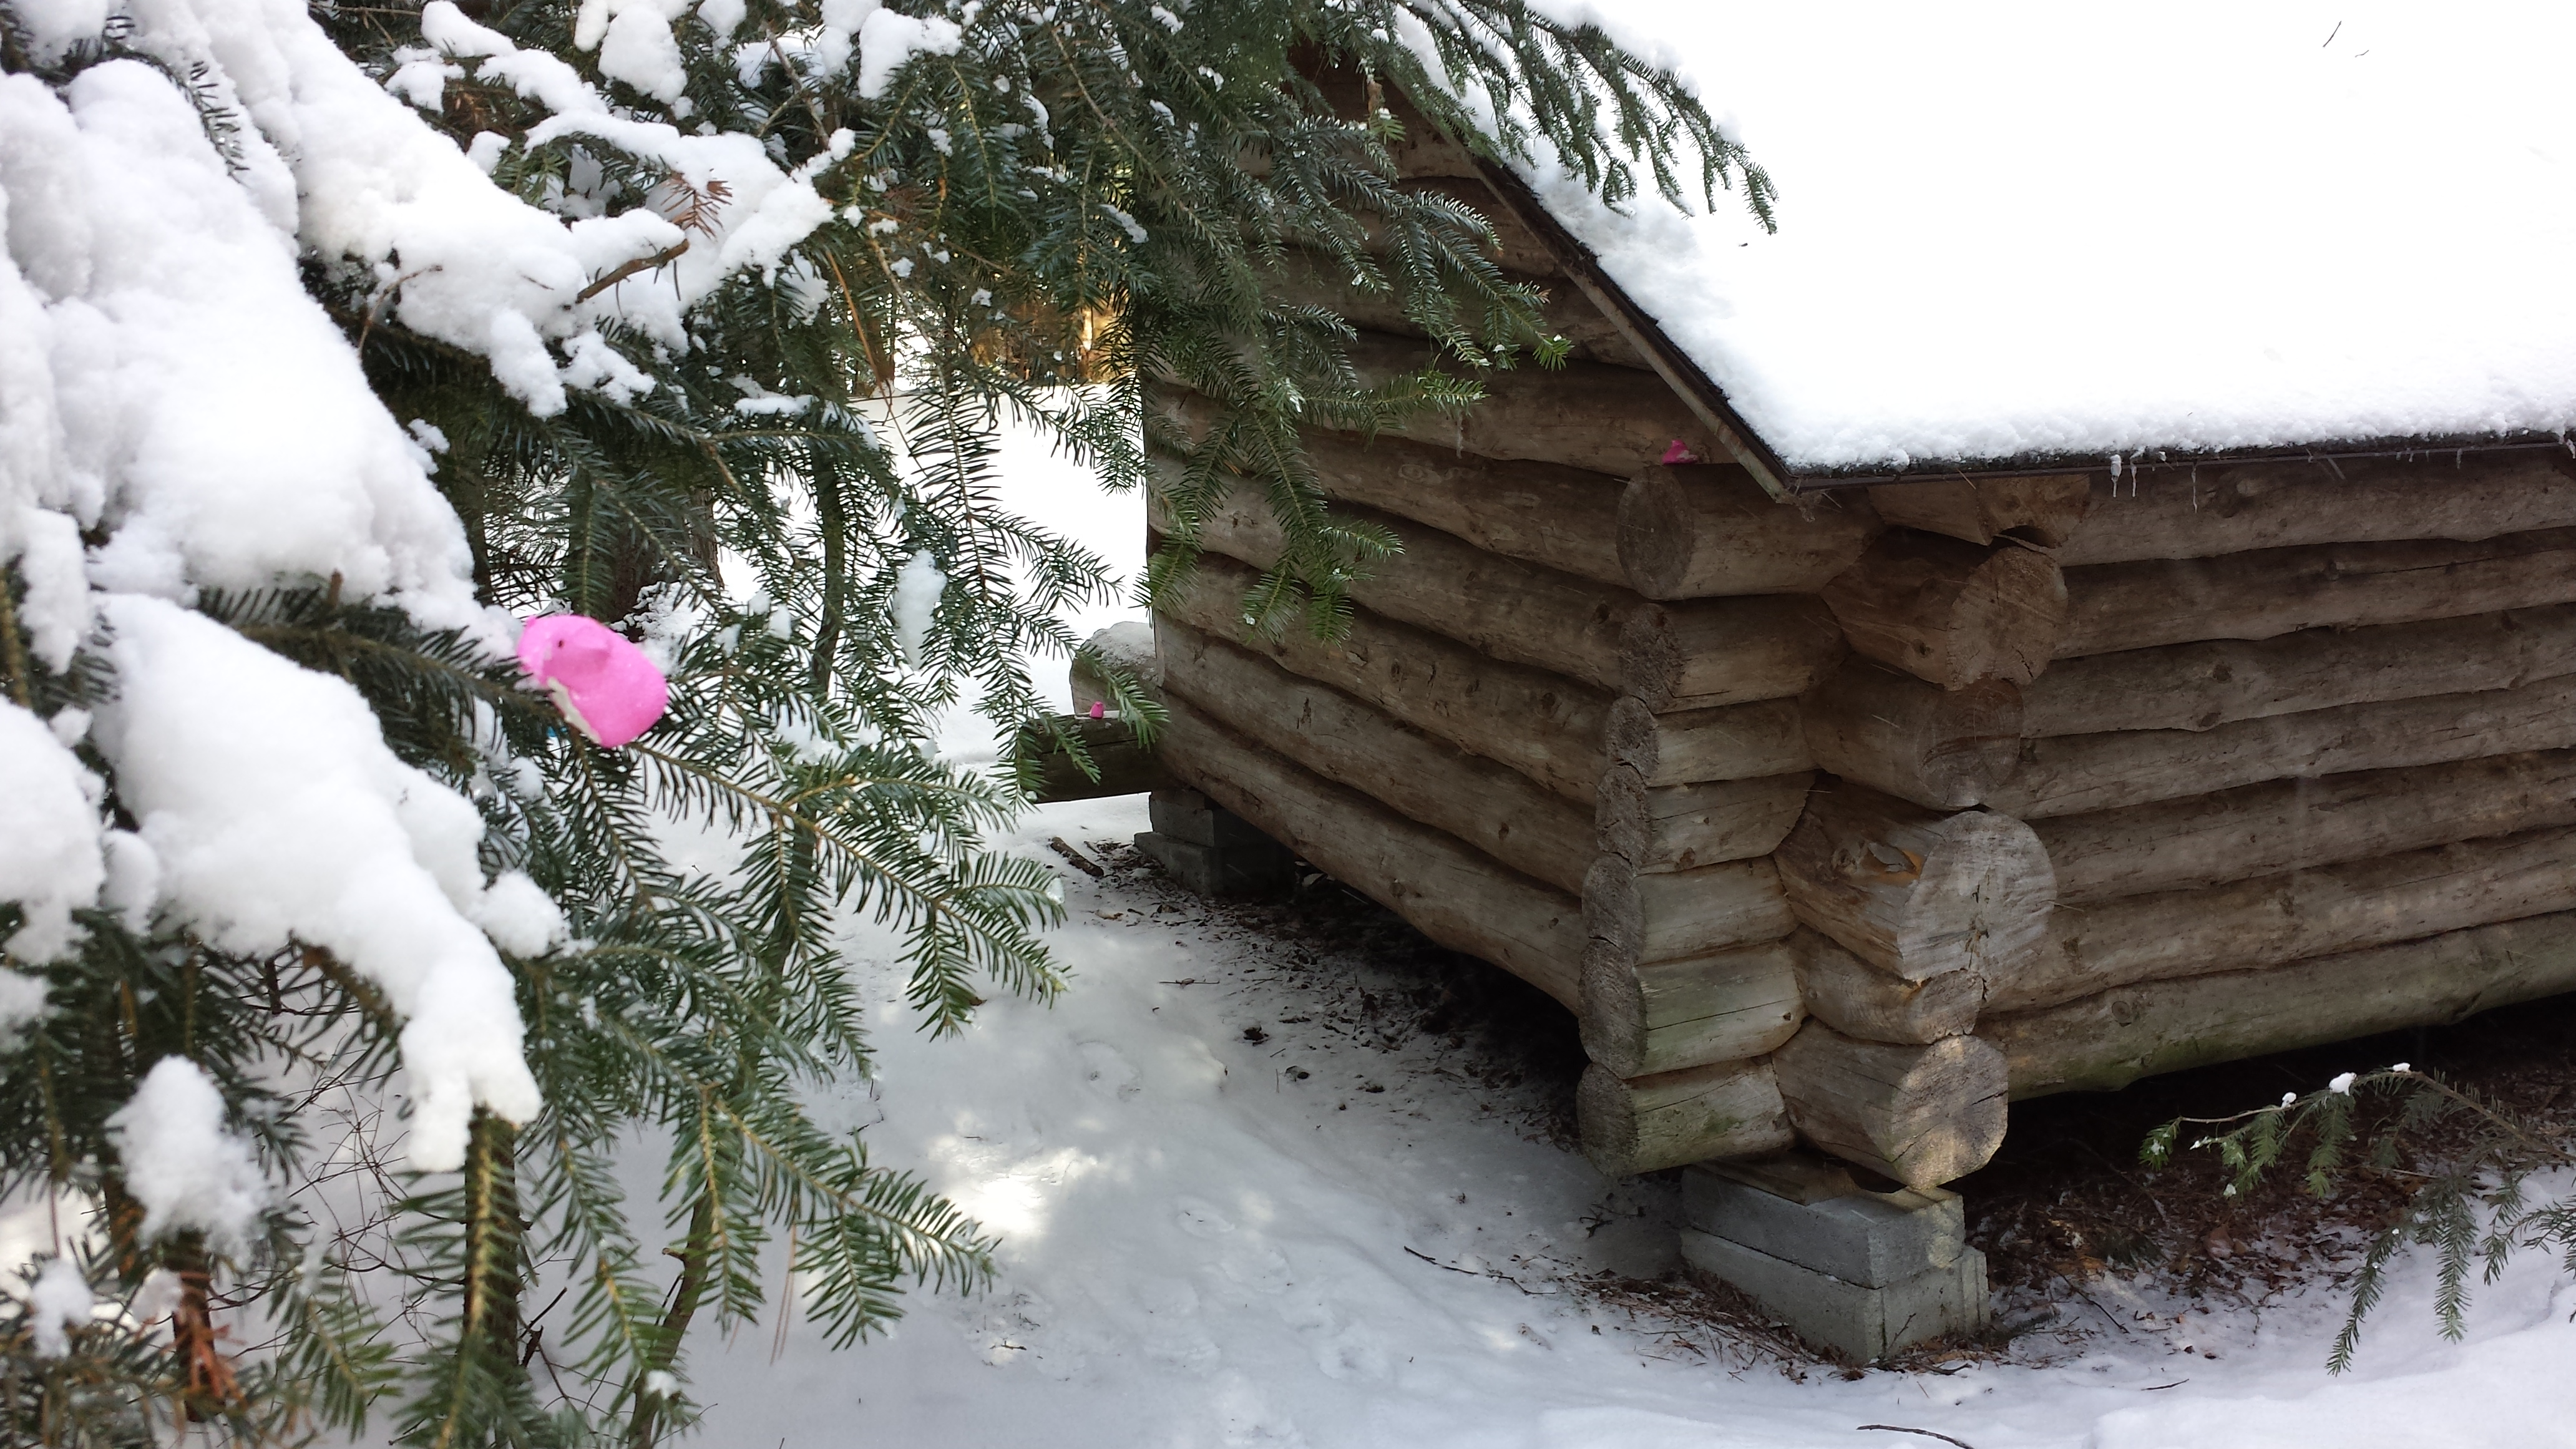 The EASTER BUNNY came to the Lean to!! Easter Egg hunt and lean to camping in the Winter at ADK's Wilderness Campground at Heart Lake.